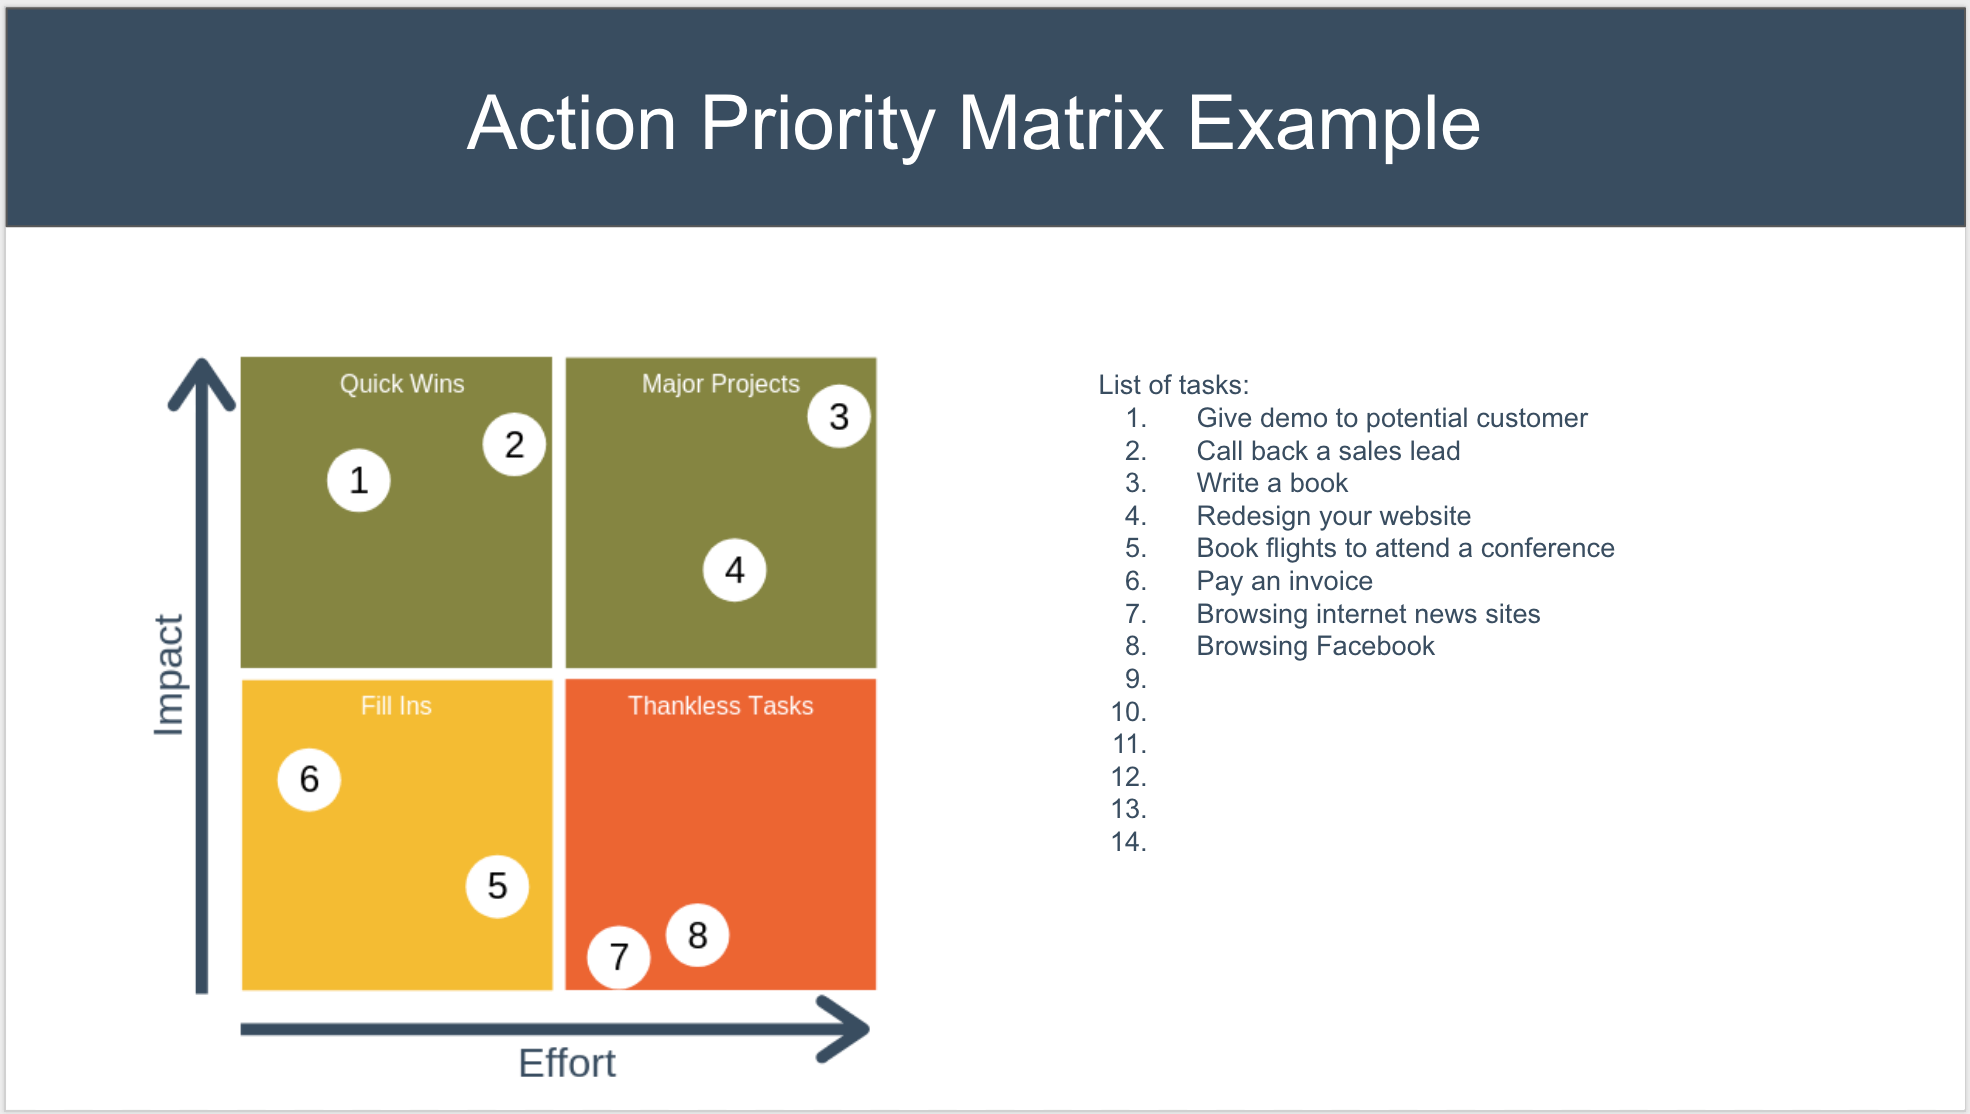 Action Priority Matrix Example